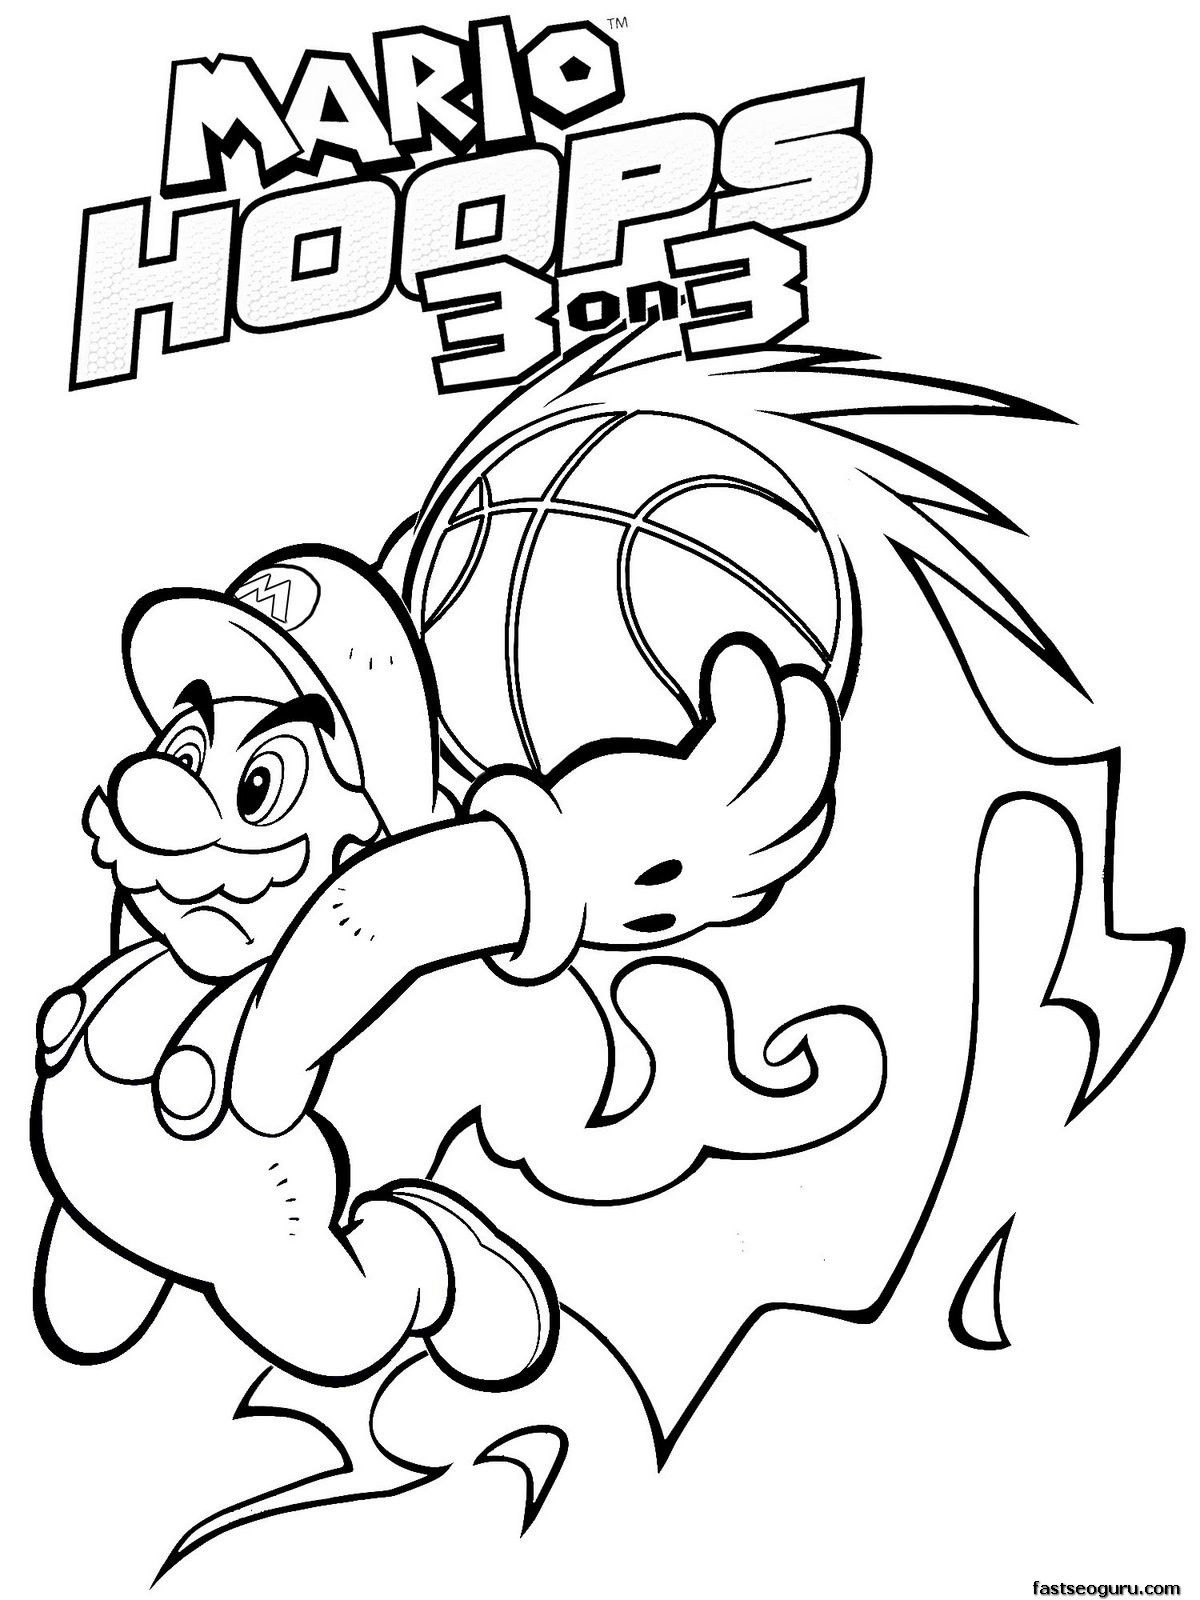 mario 3d world coloring pages coloring pages mario 3d world coloring home mario coloring pages 3d world